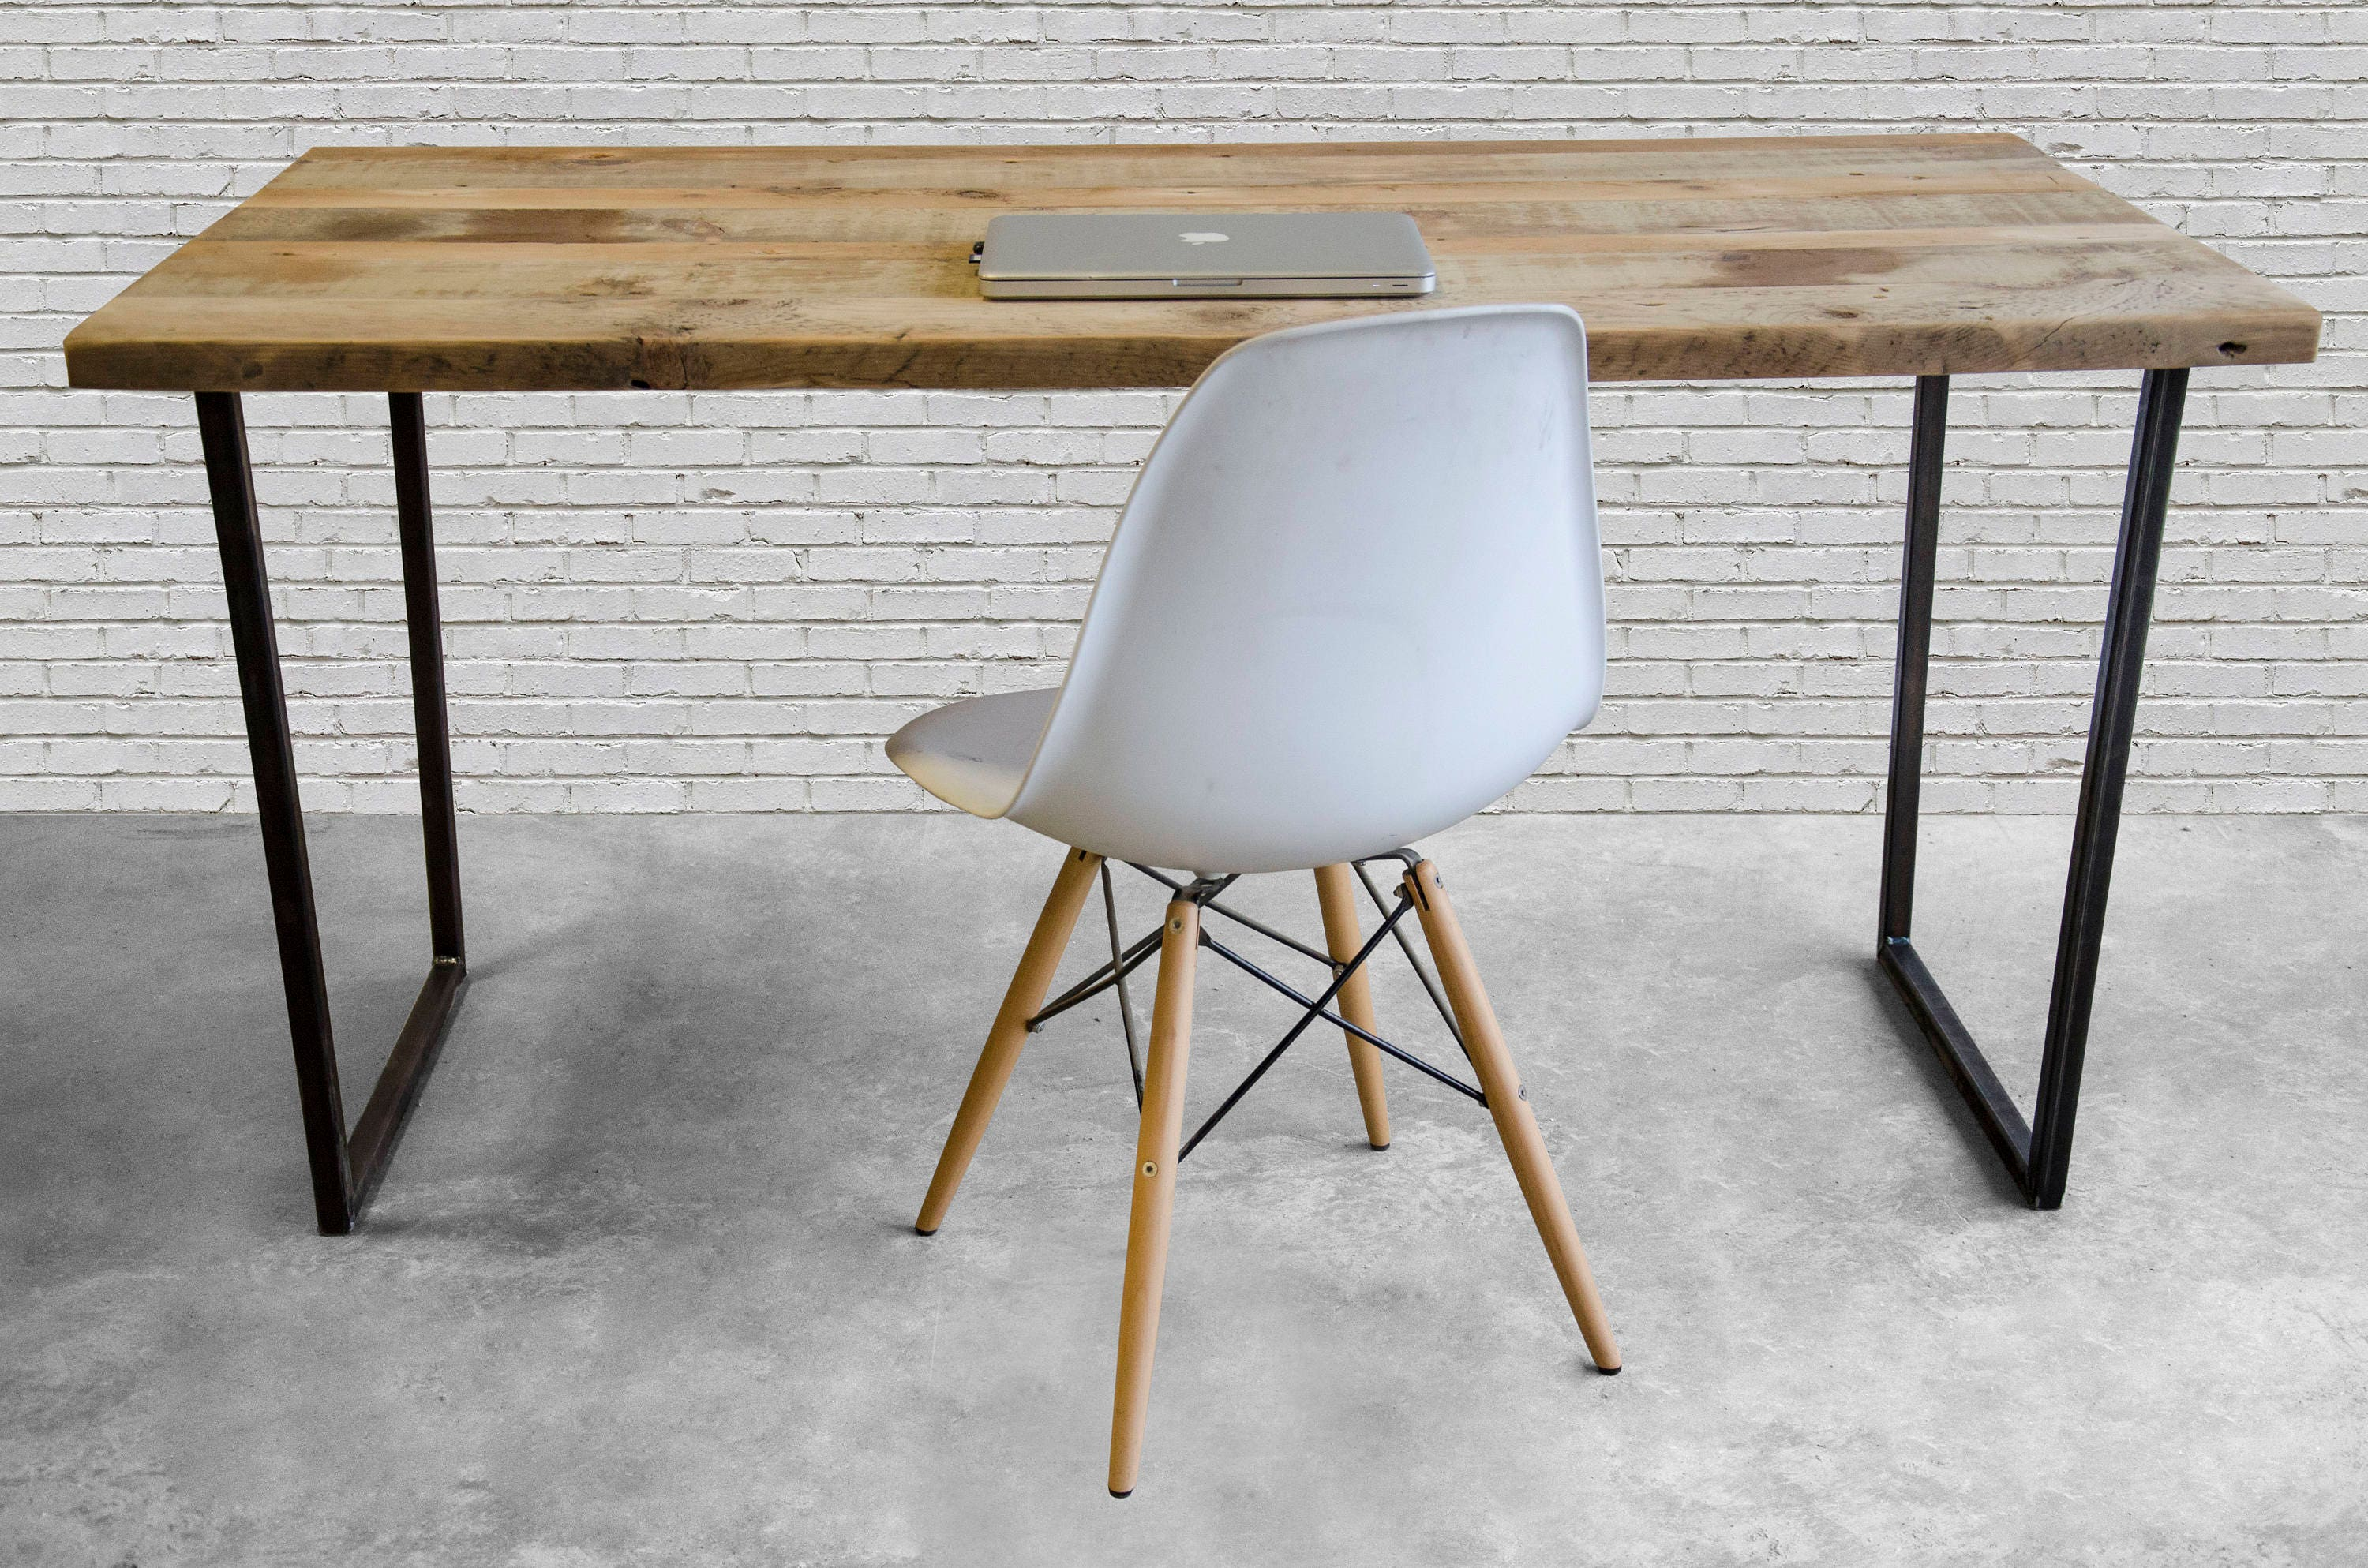 "Urban Wood Desk, Barnwood Desk, Farmhouse Desk. Sitting Height 49""H pic 49  or Standing Height 49""H pic 49, same price. Specify in order notes."